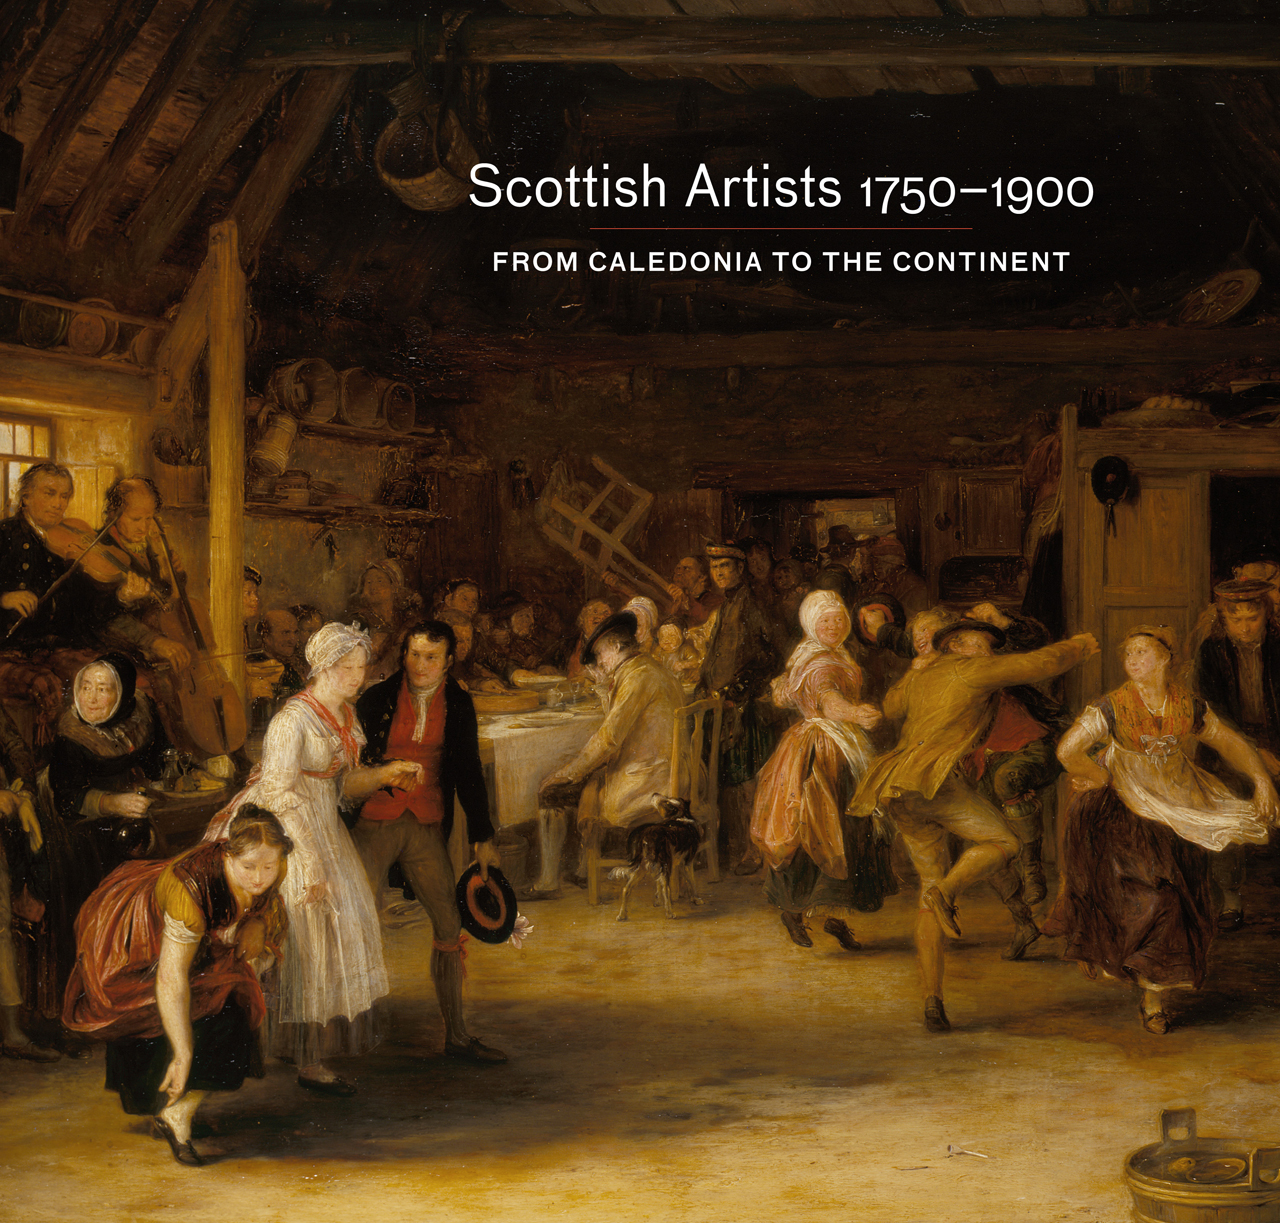 Scottish Artists 1750-1900: From Caledonia to the Continent